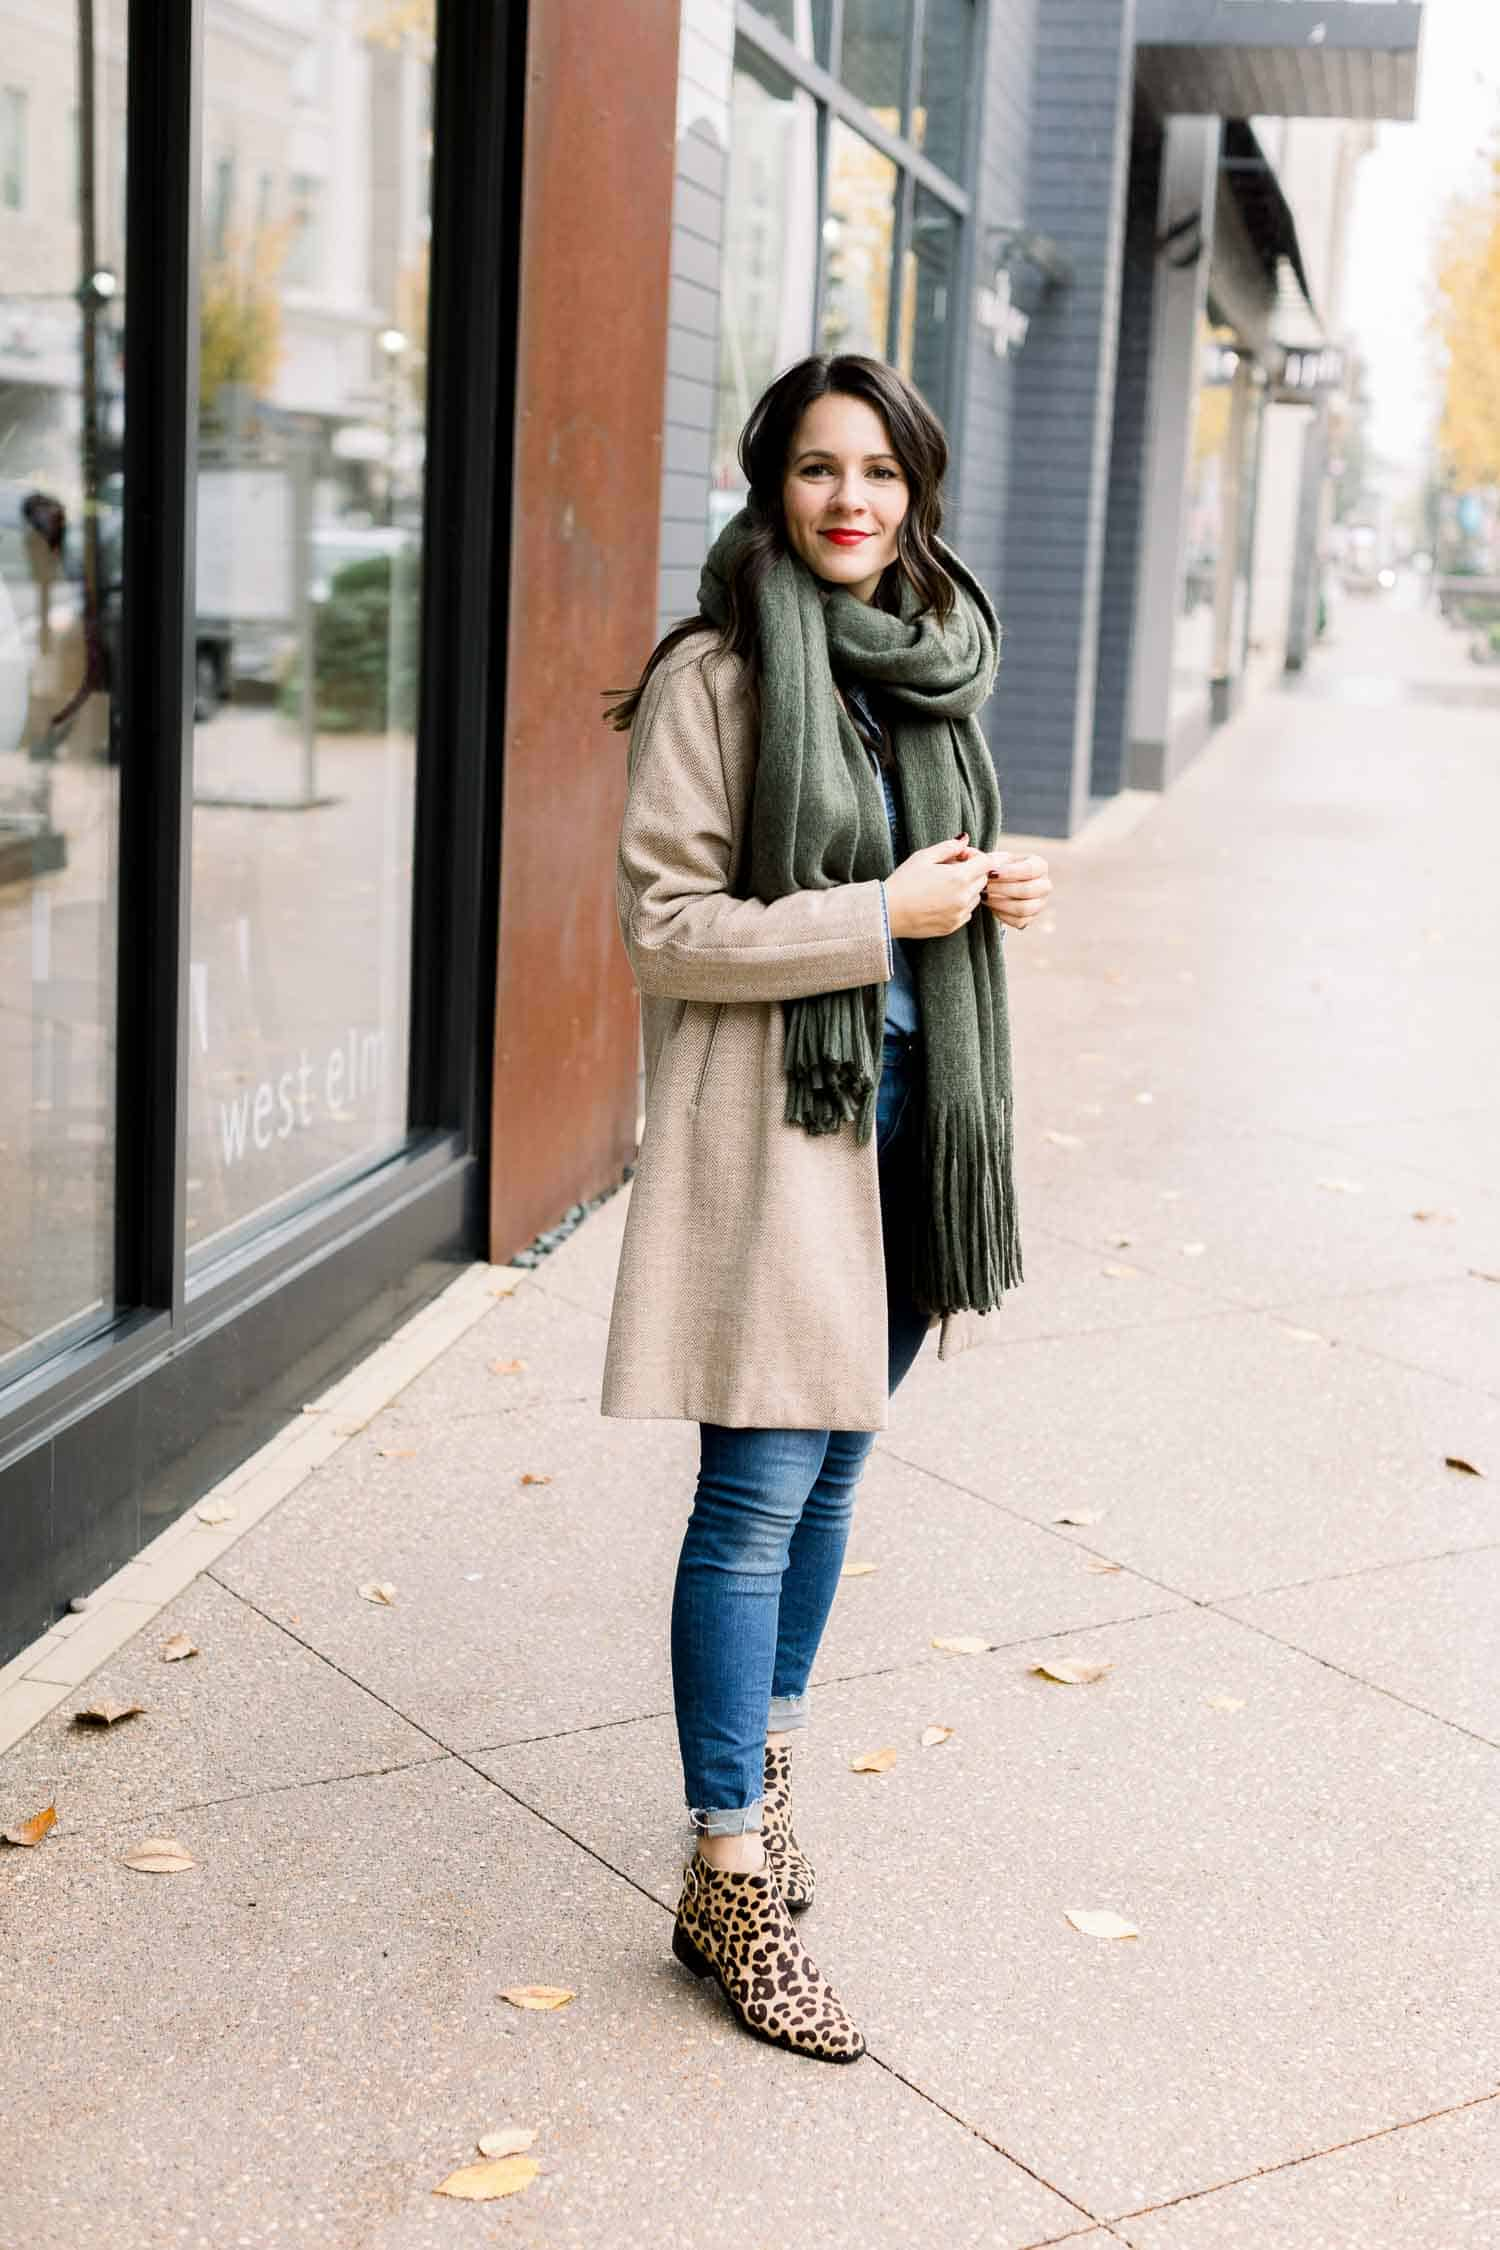 What To Wear To Wine Country In The Winter - My Style Vita